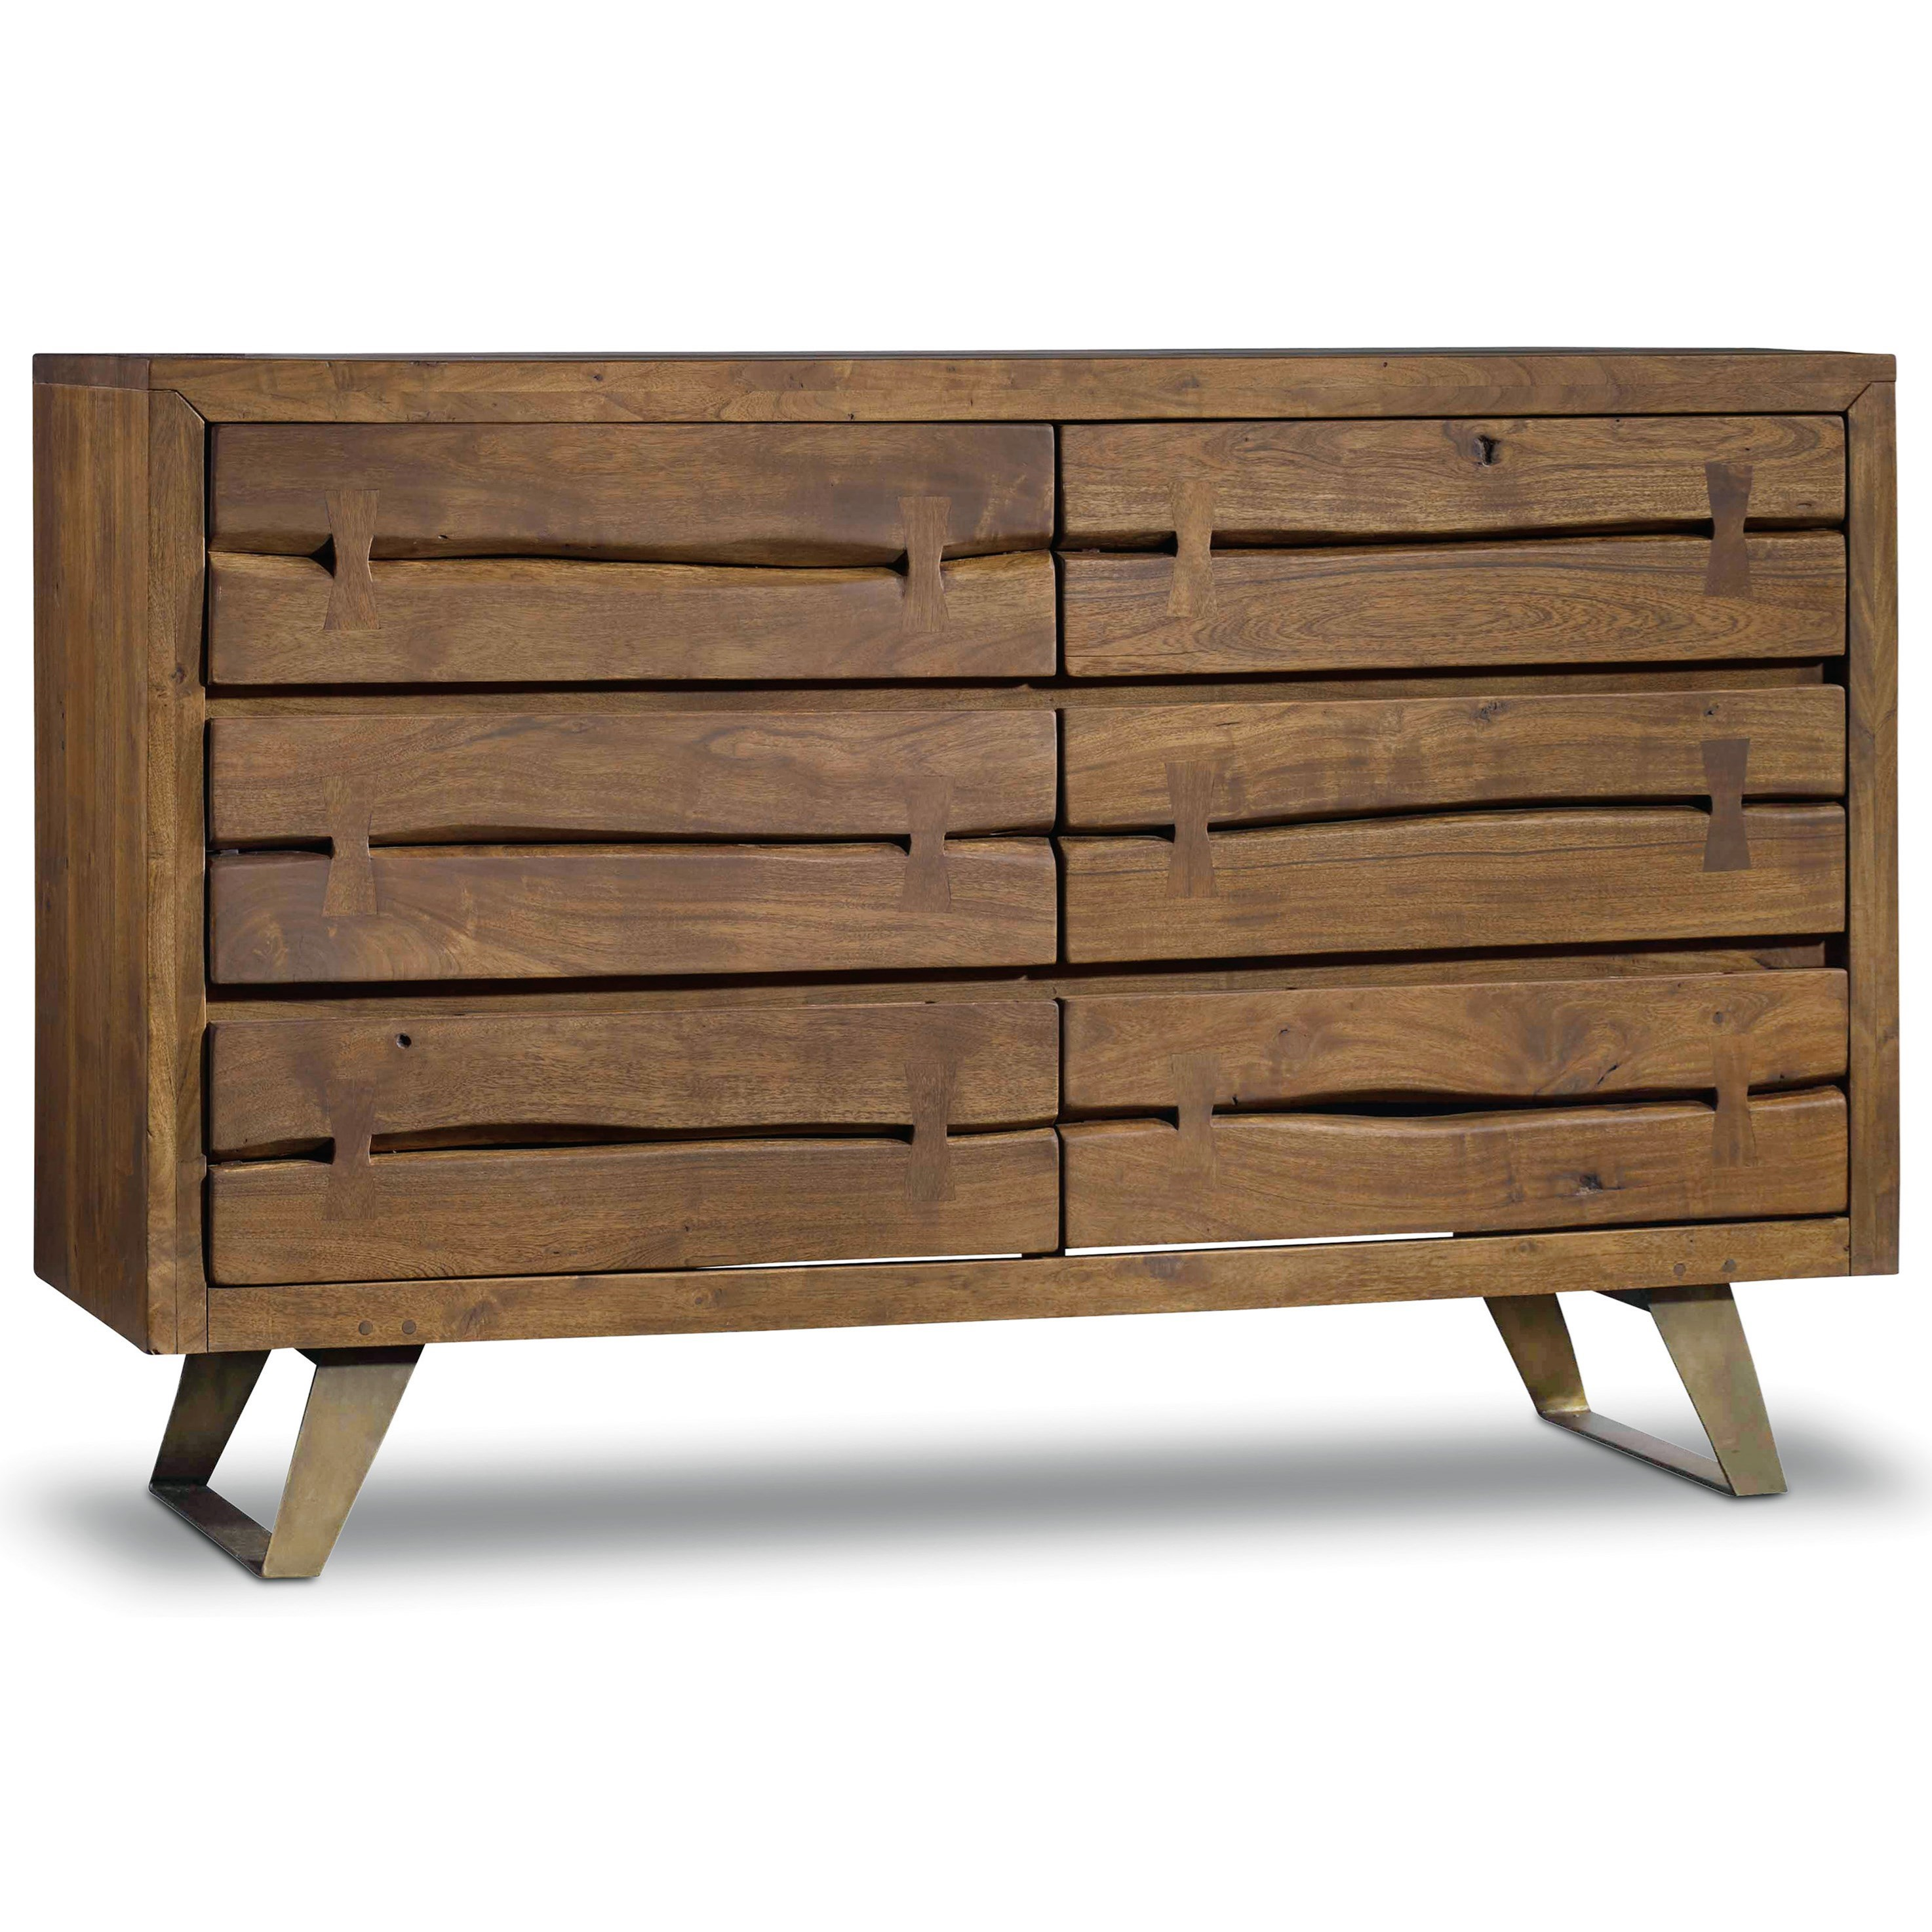 Hooker Furniture Transcend 6 Drawer Dresser - Item Number: 7000-90002